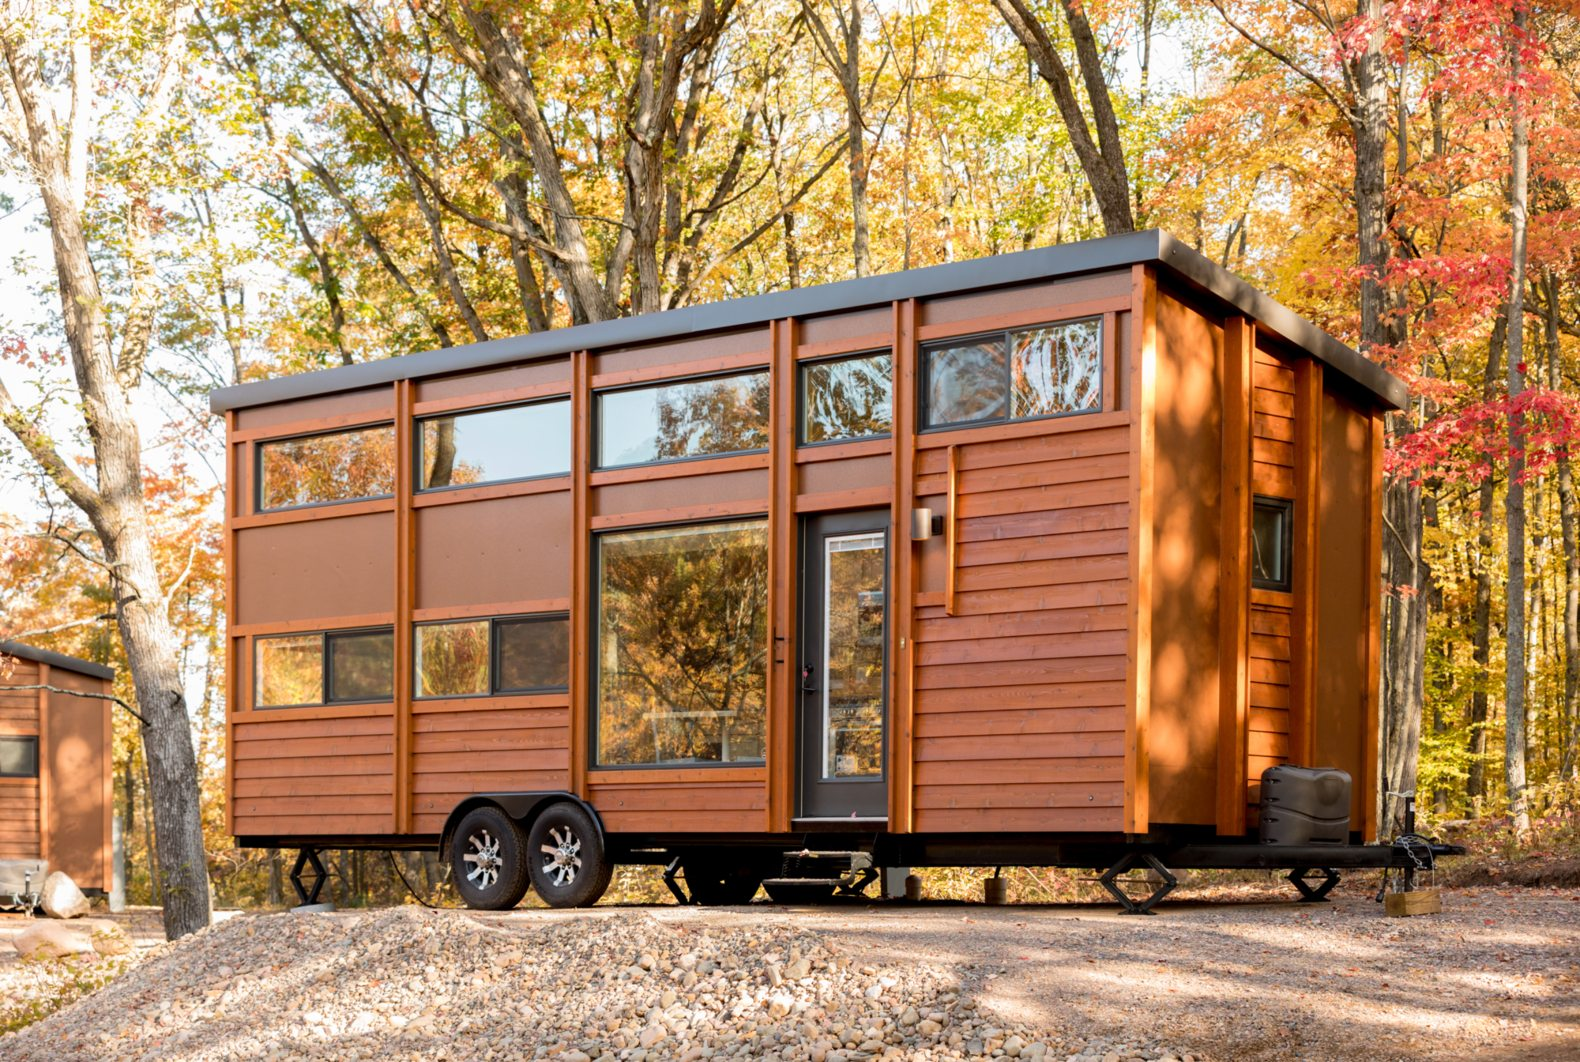 Tiny home resort opens in idyllic forest setting in Wisconsin